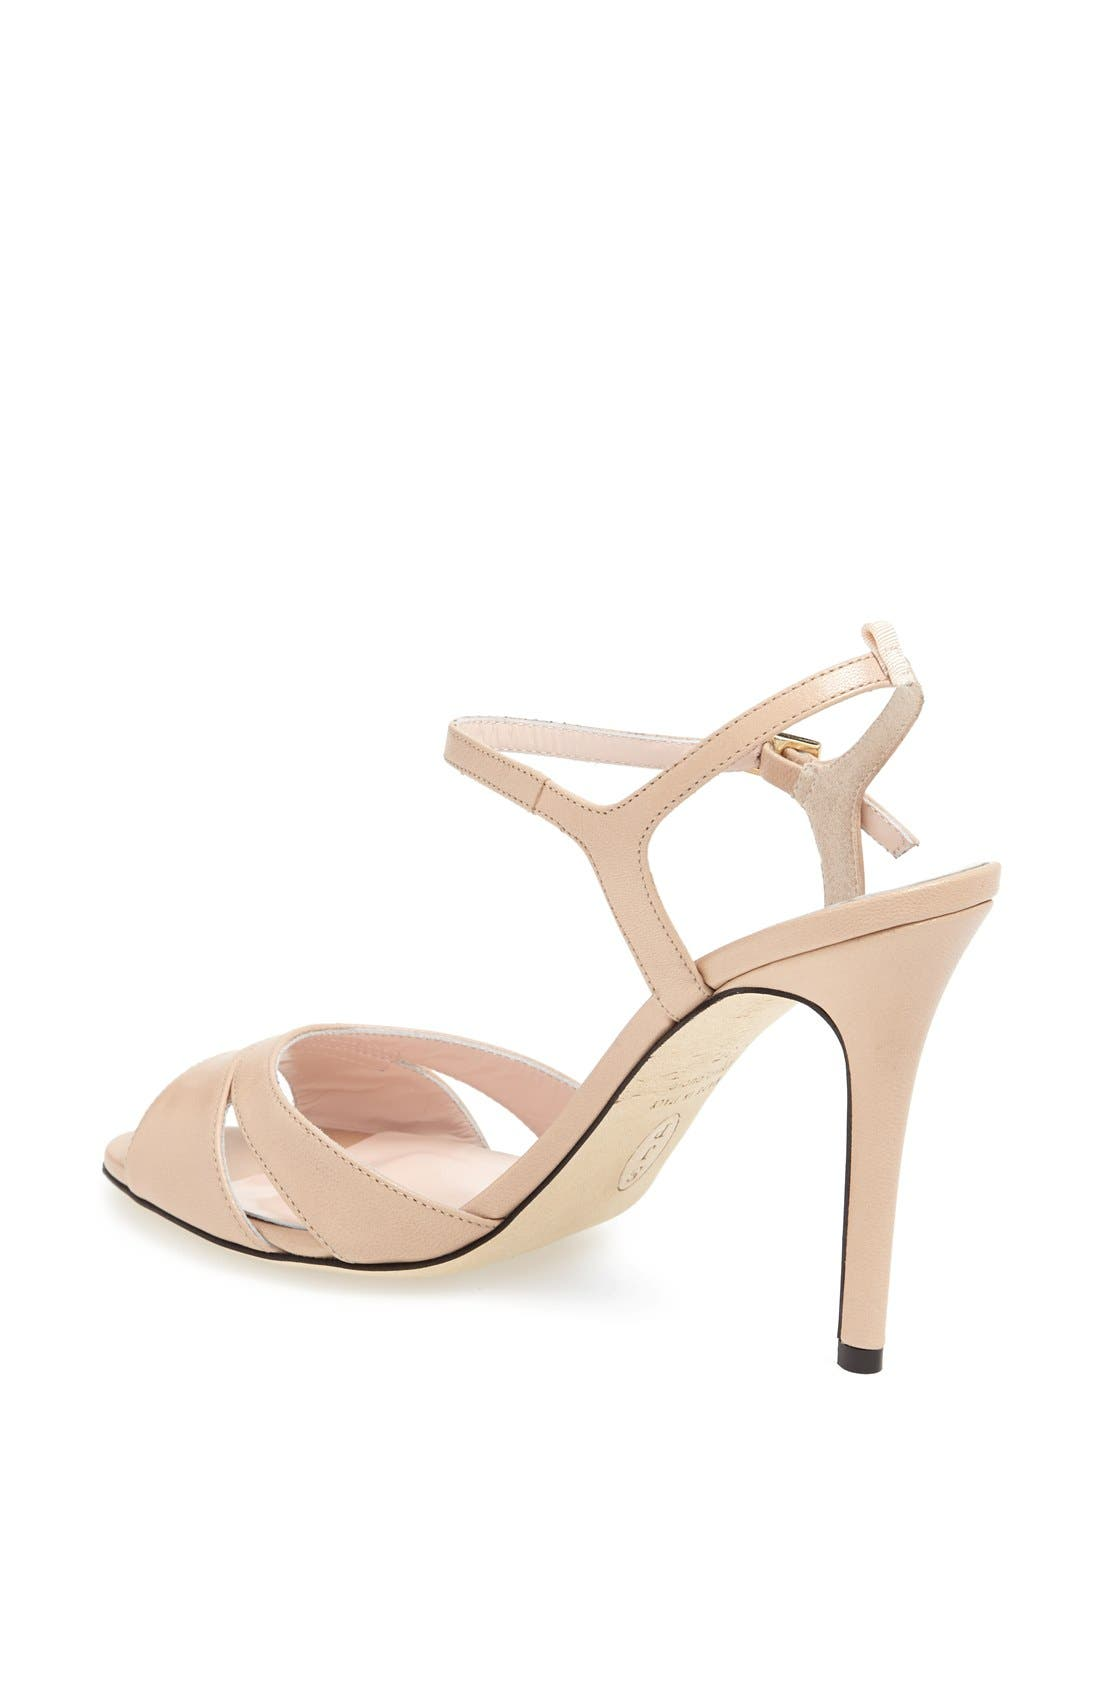 Alternate Image 3  - SJP 'Anna' Sandal (Nordstrom Exclusive)